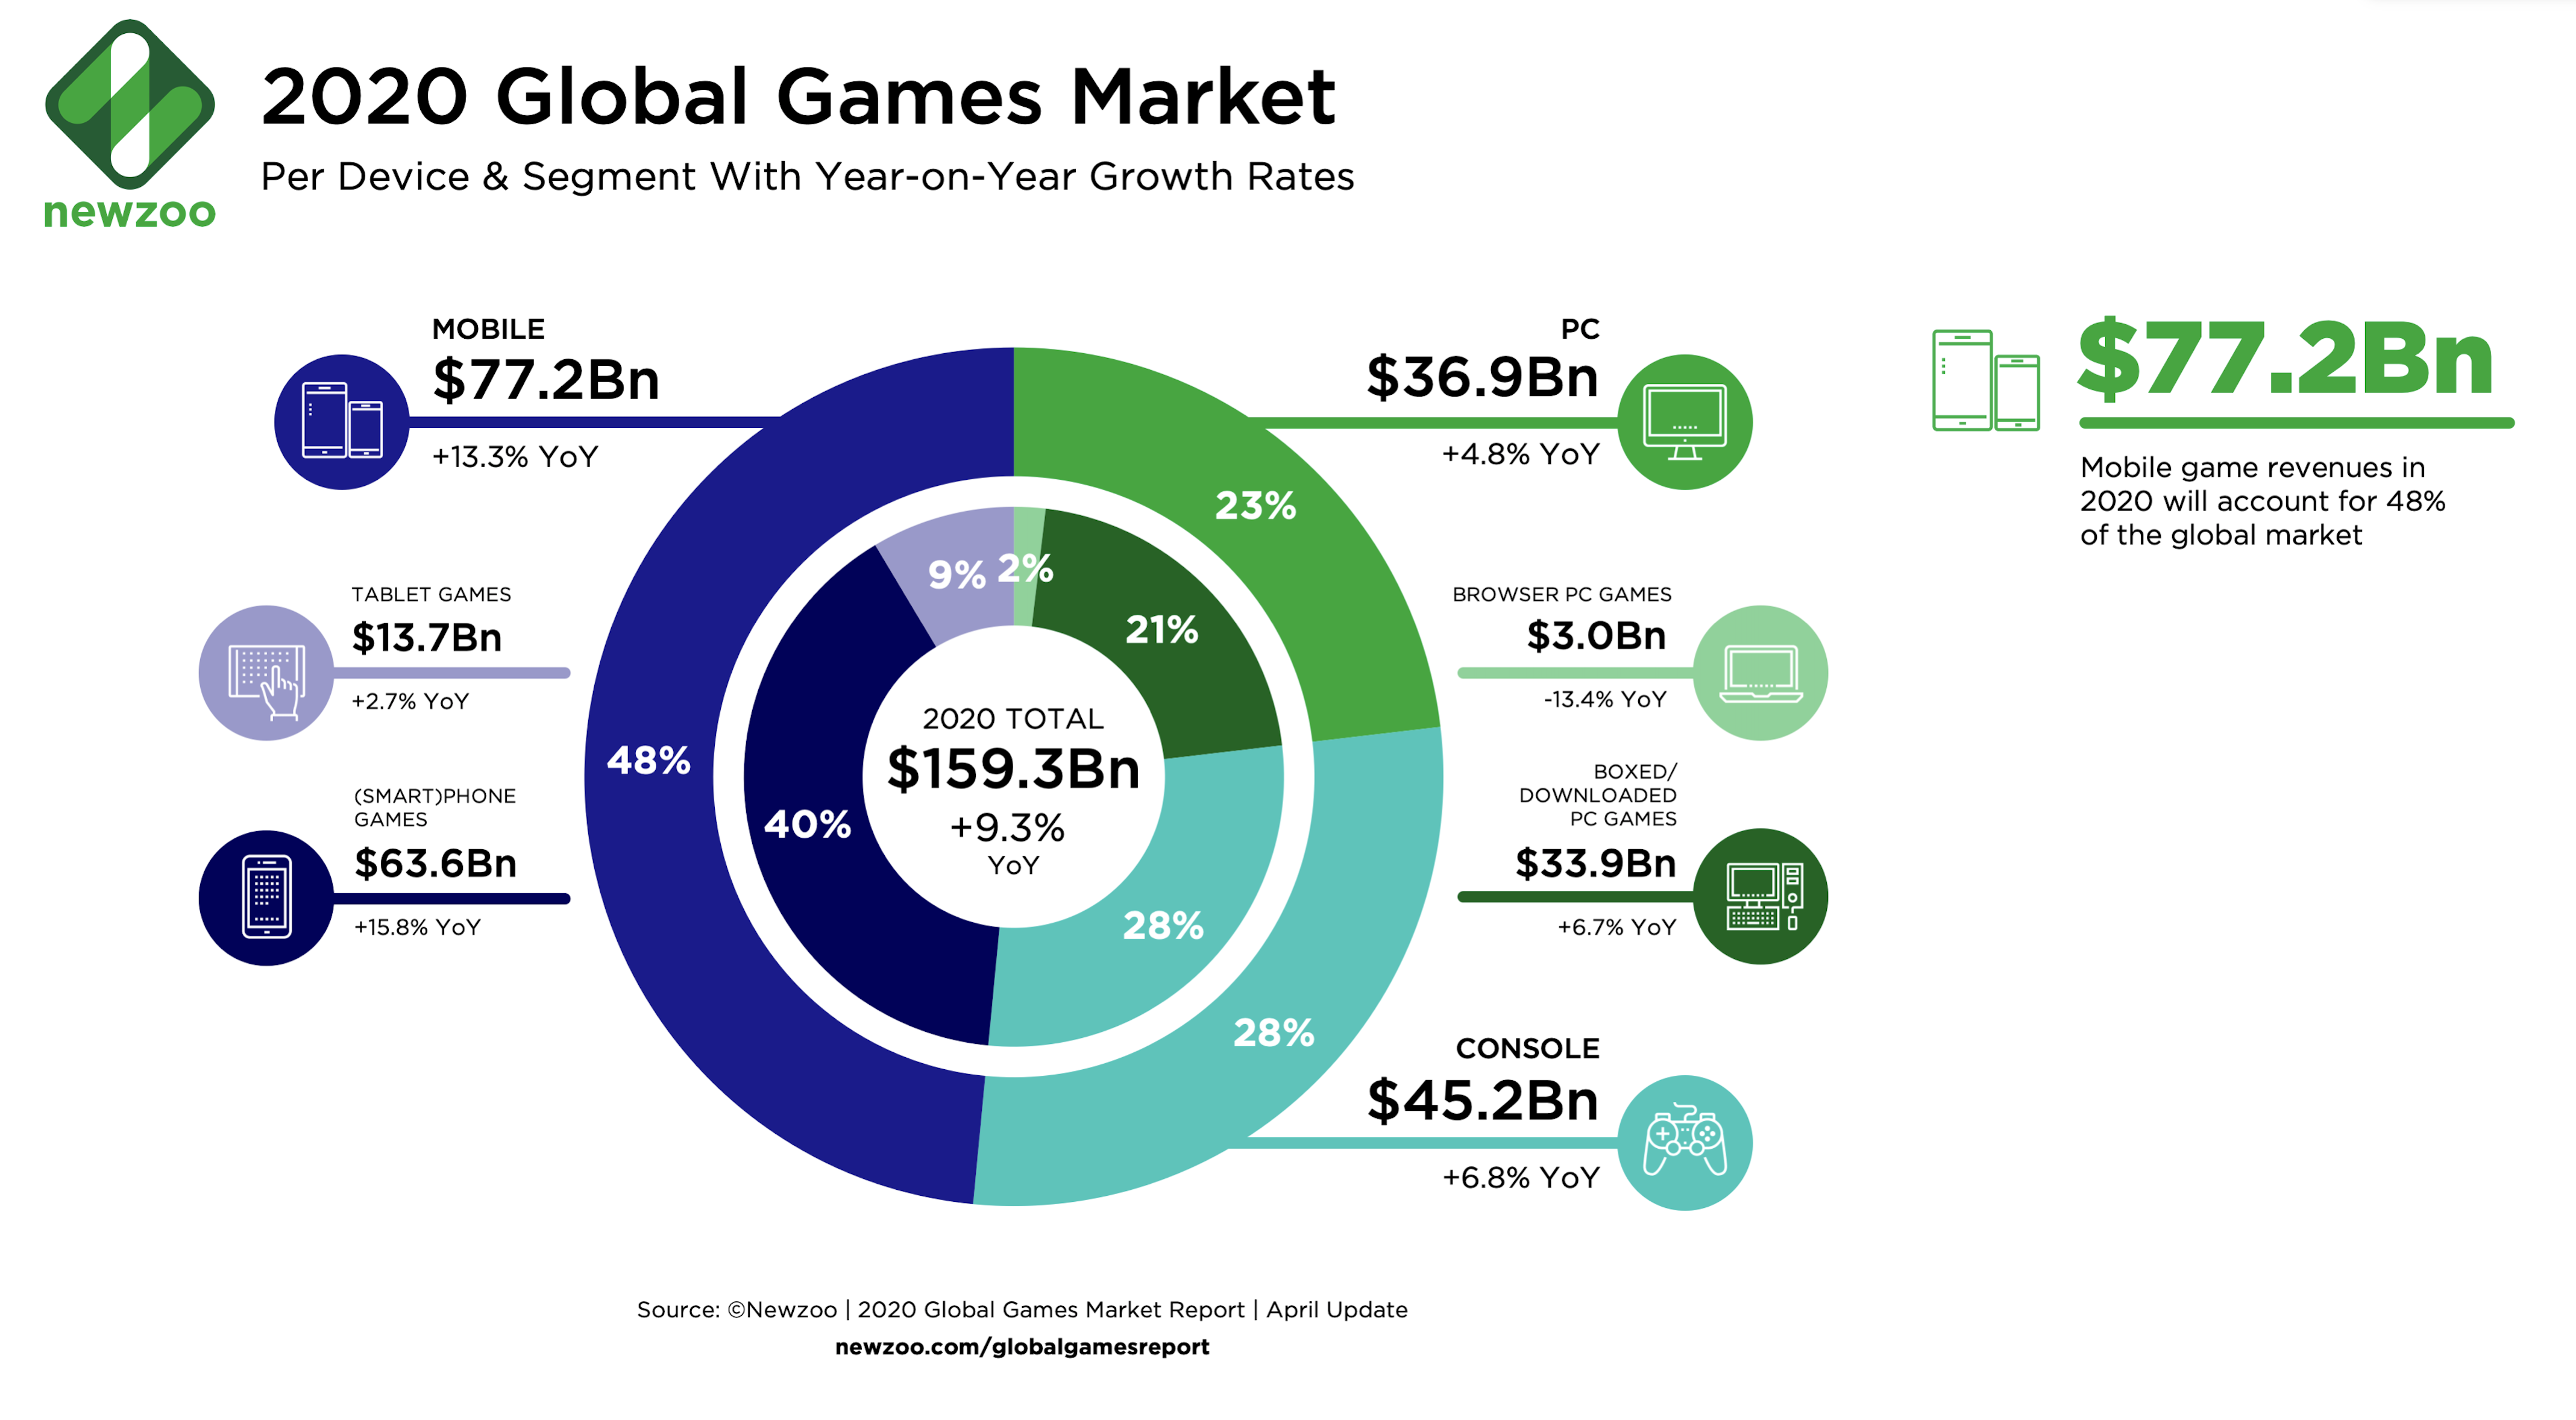 The gaming industry's revenues far outstrip other entertainment sectors